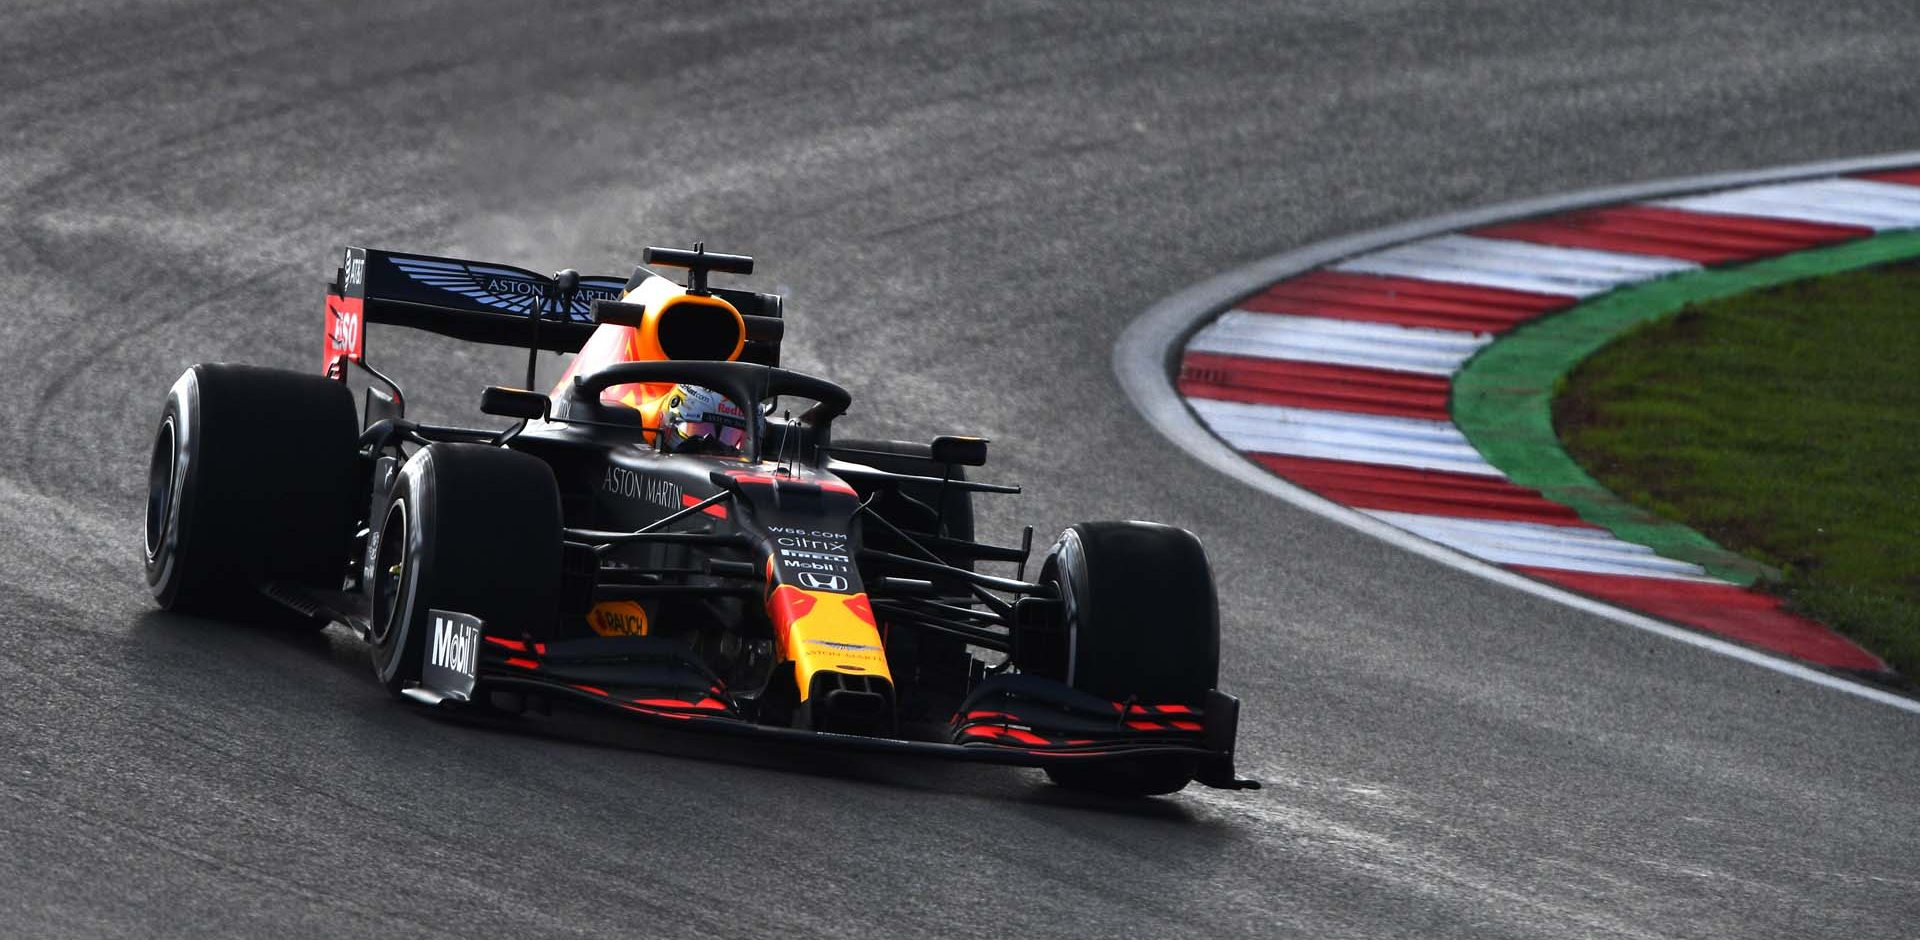 ISTANBUL, TURKEY - NOVEMBER 13: Max Verstappen of the Netherlands driving the (33) Aston Martin Red Bull Racing RB16 on track during practice ahead of the F1 Grand Prix of Turkey at Intercity Istanbul Park on November 13, 2020 in Istanbul, Turkey. (Photo by Rudy Carezzevoli/Getty Images)